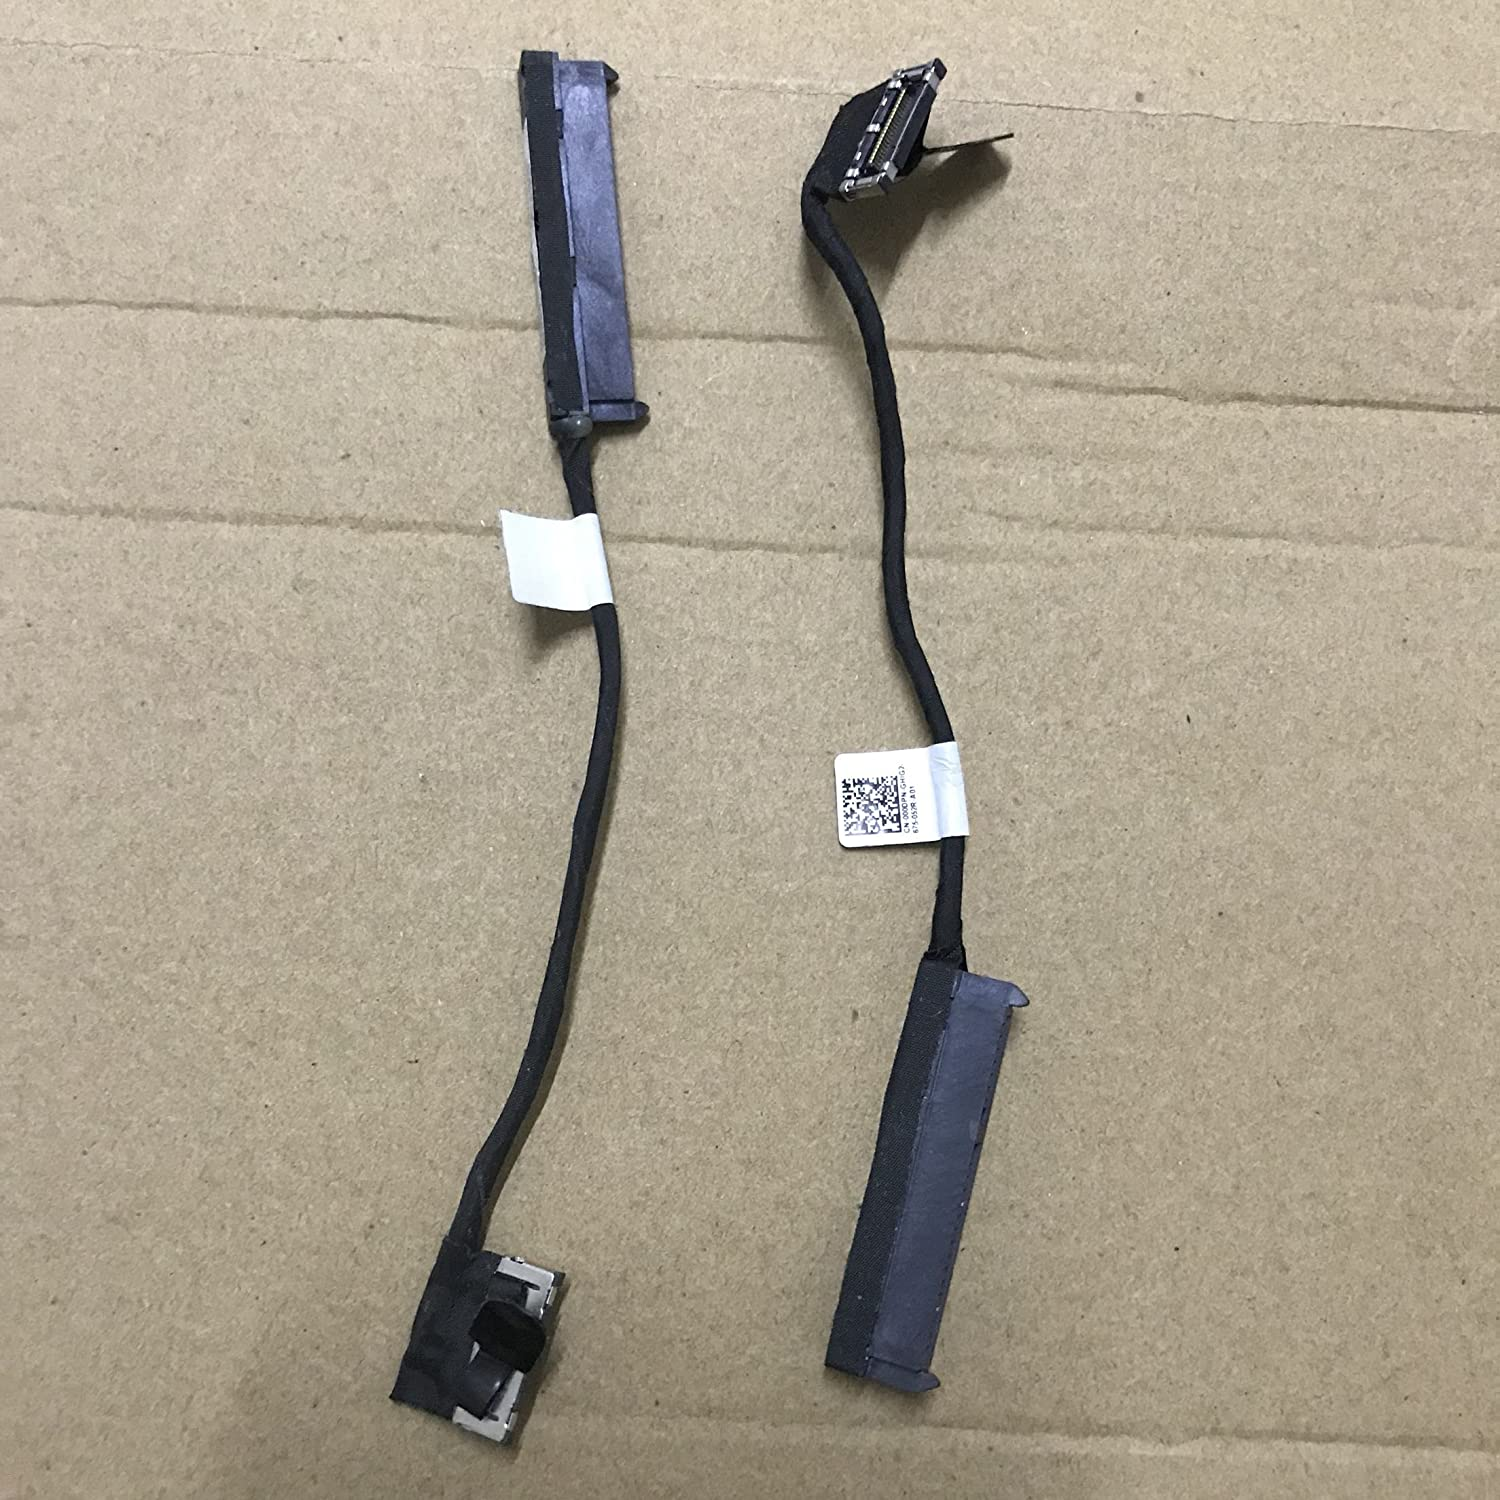 SOUTHERNINTL New Replacement for Dell Alienware 17 M17X R2 R3 Hard Drive Connector Cable 00DPN 000DPN DC02C00BZ00 DC02C009F00